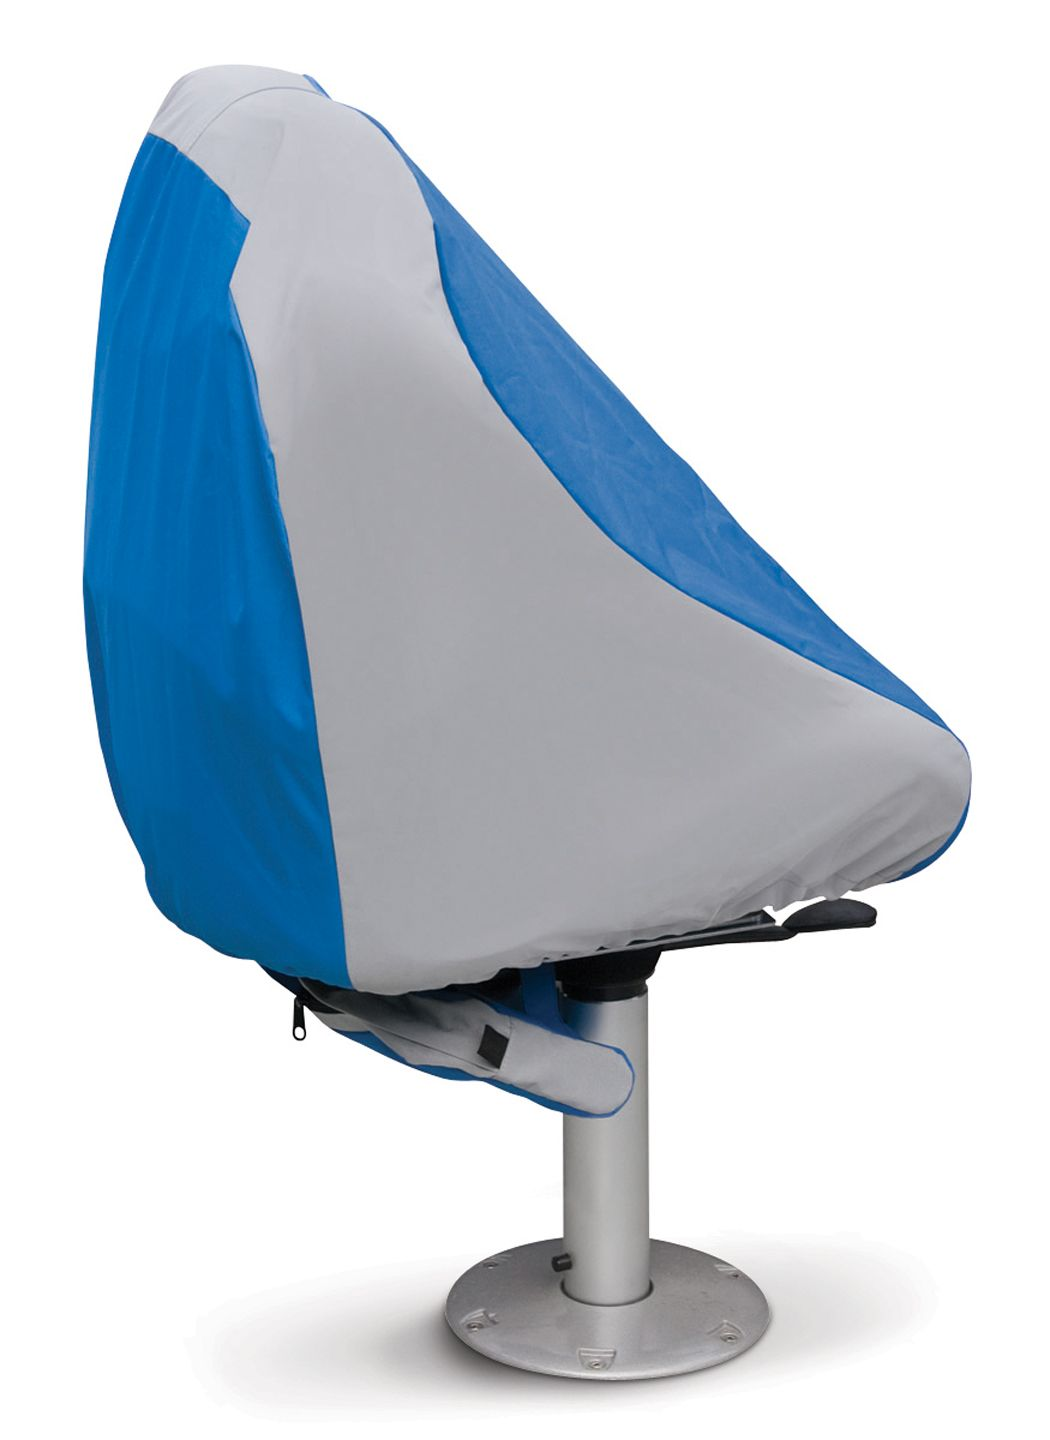 west marine chairs gym chair amazon boat seat covers camo boats for sale in johannesburg